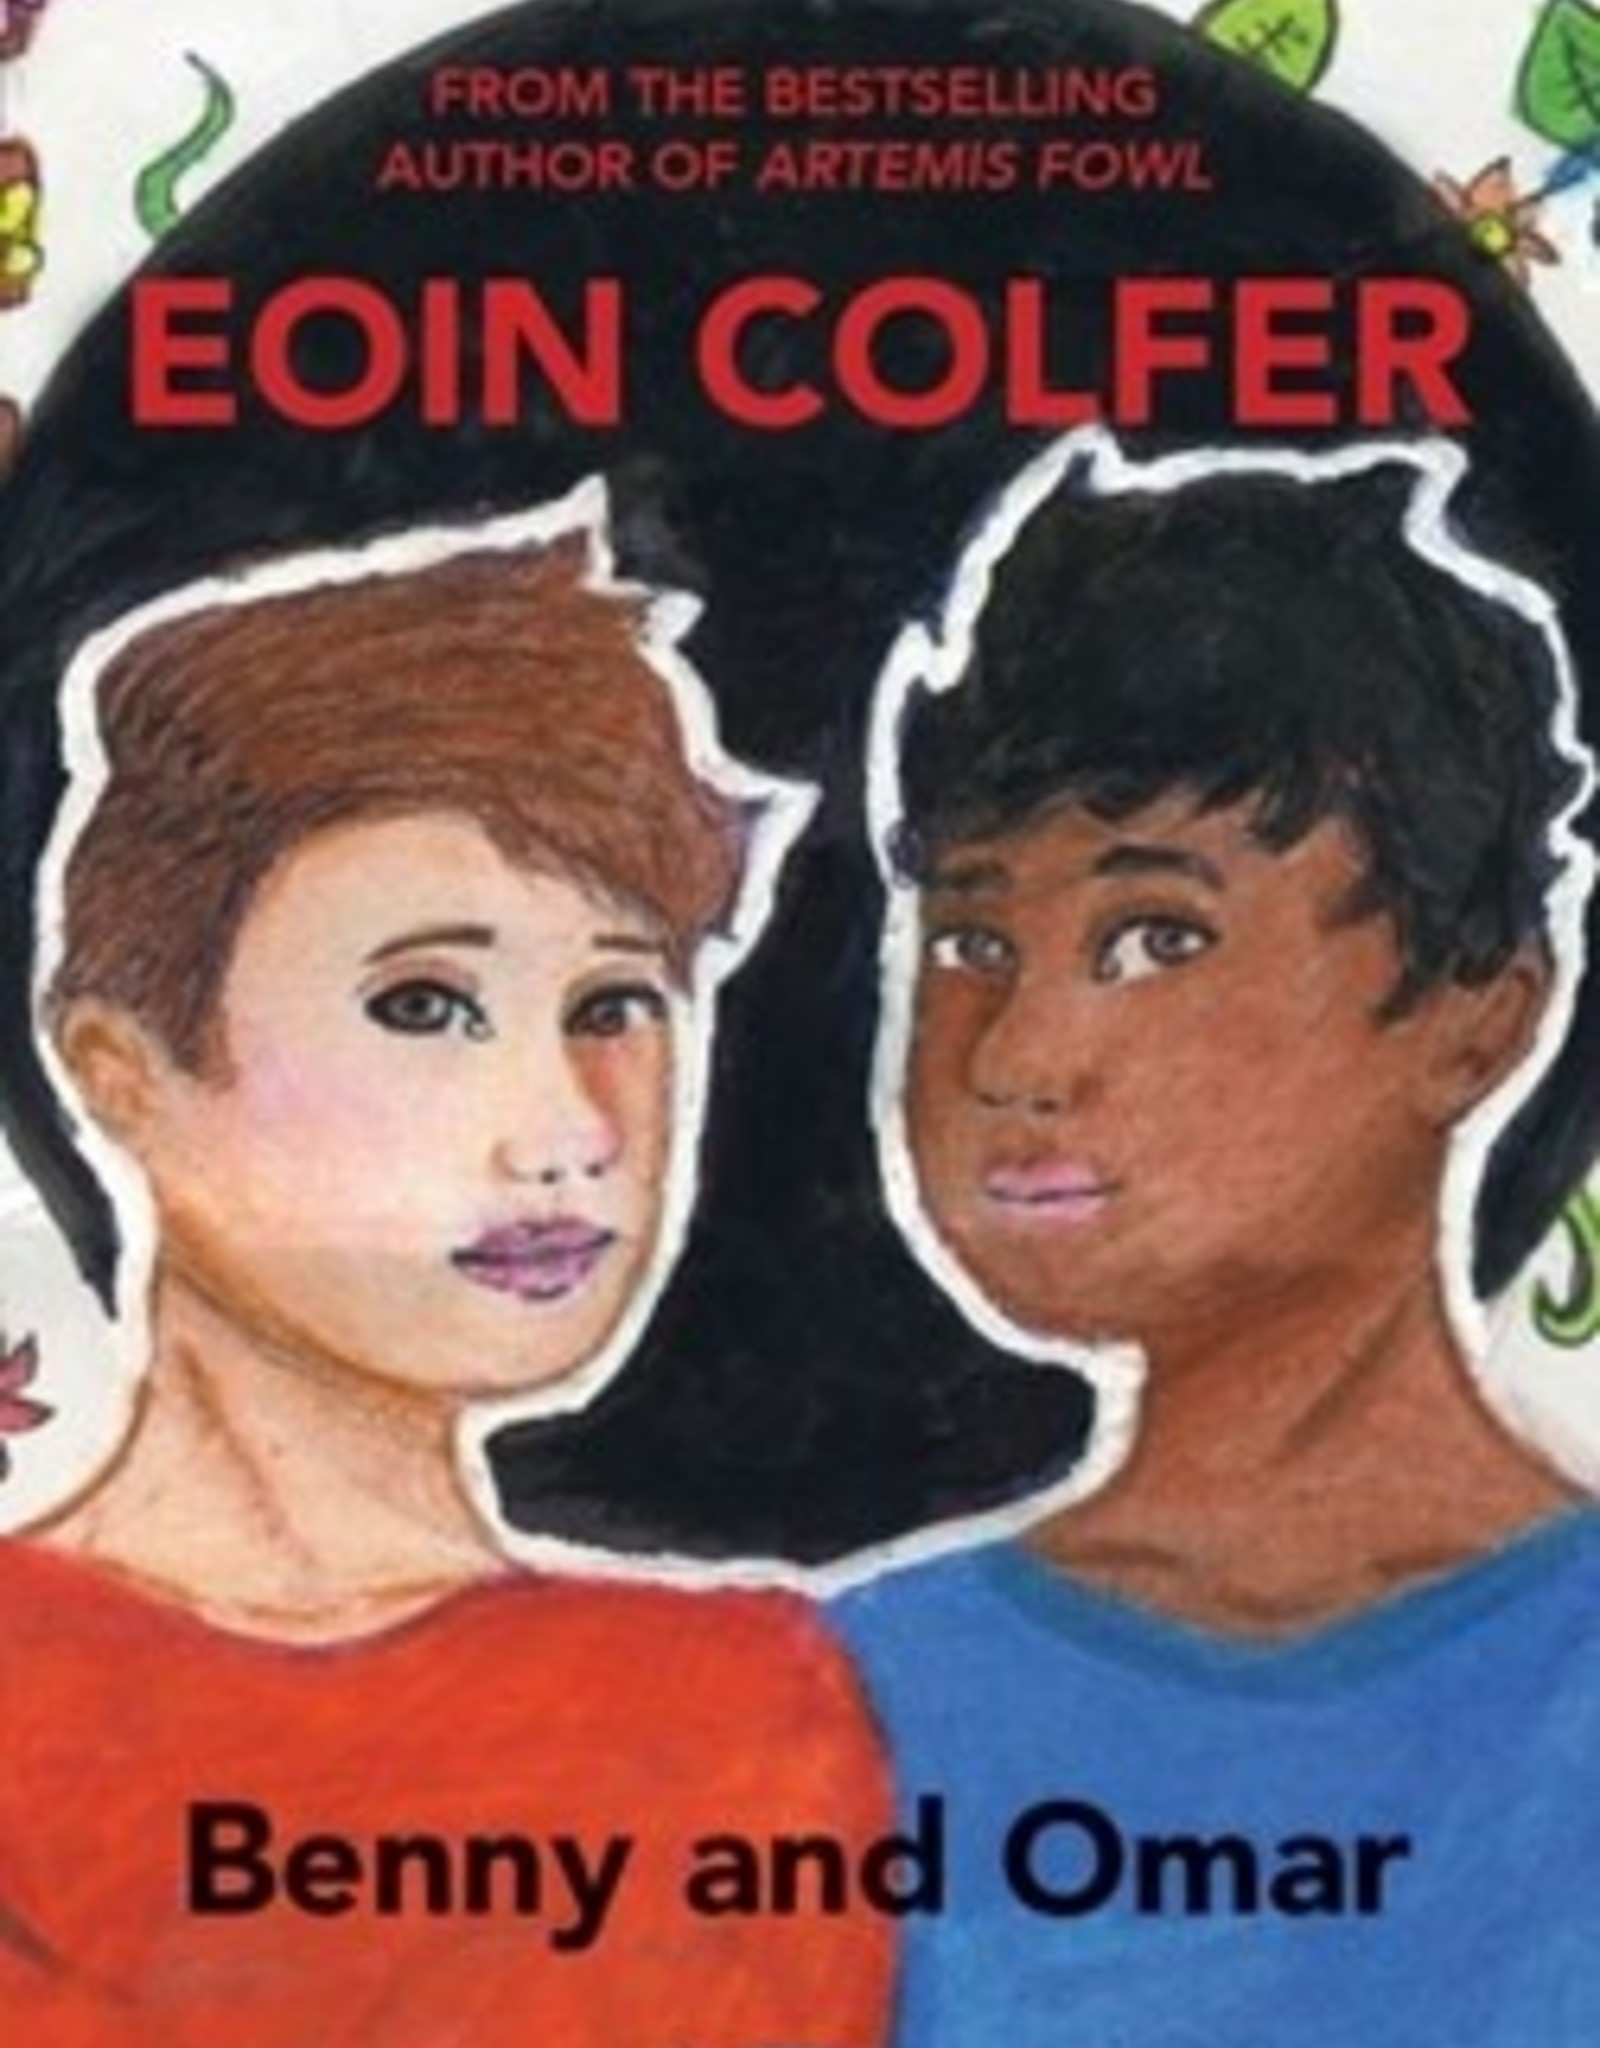 The O'Brien Press Benny and Omar - Eoin Colfer